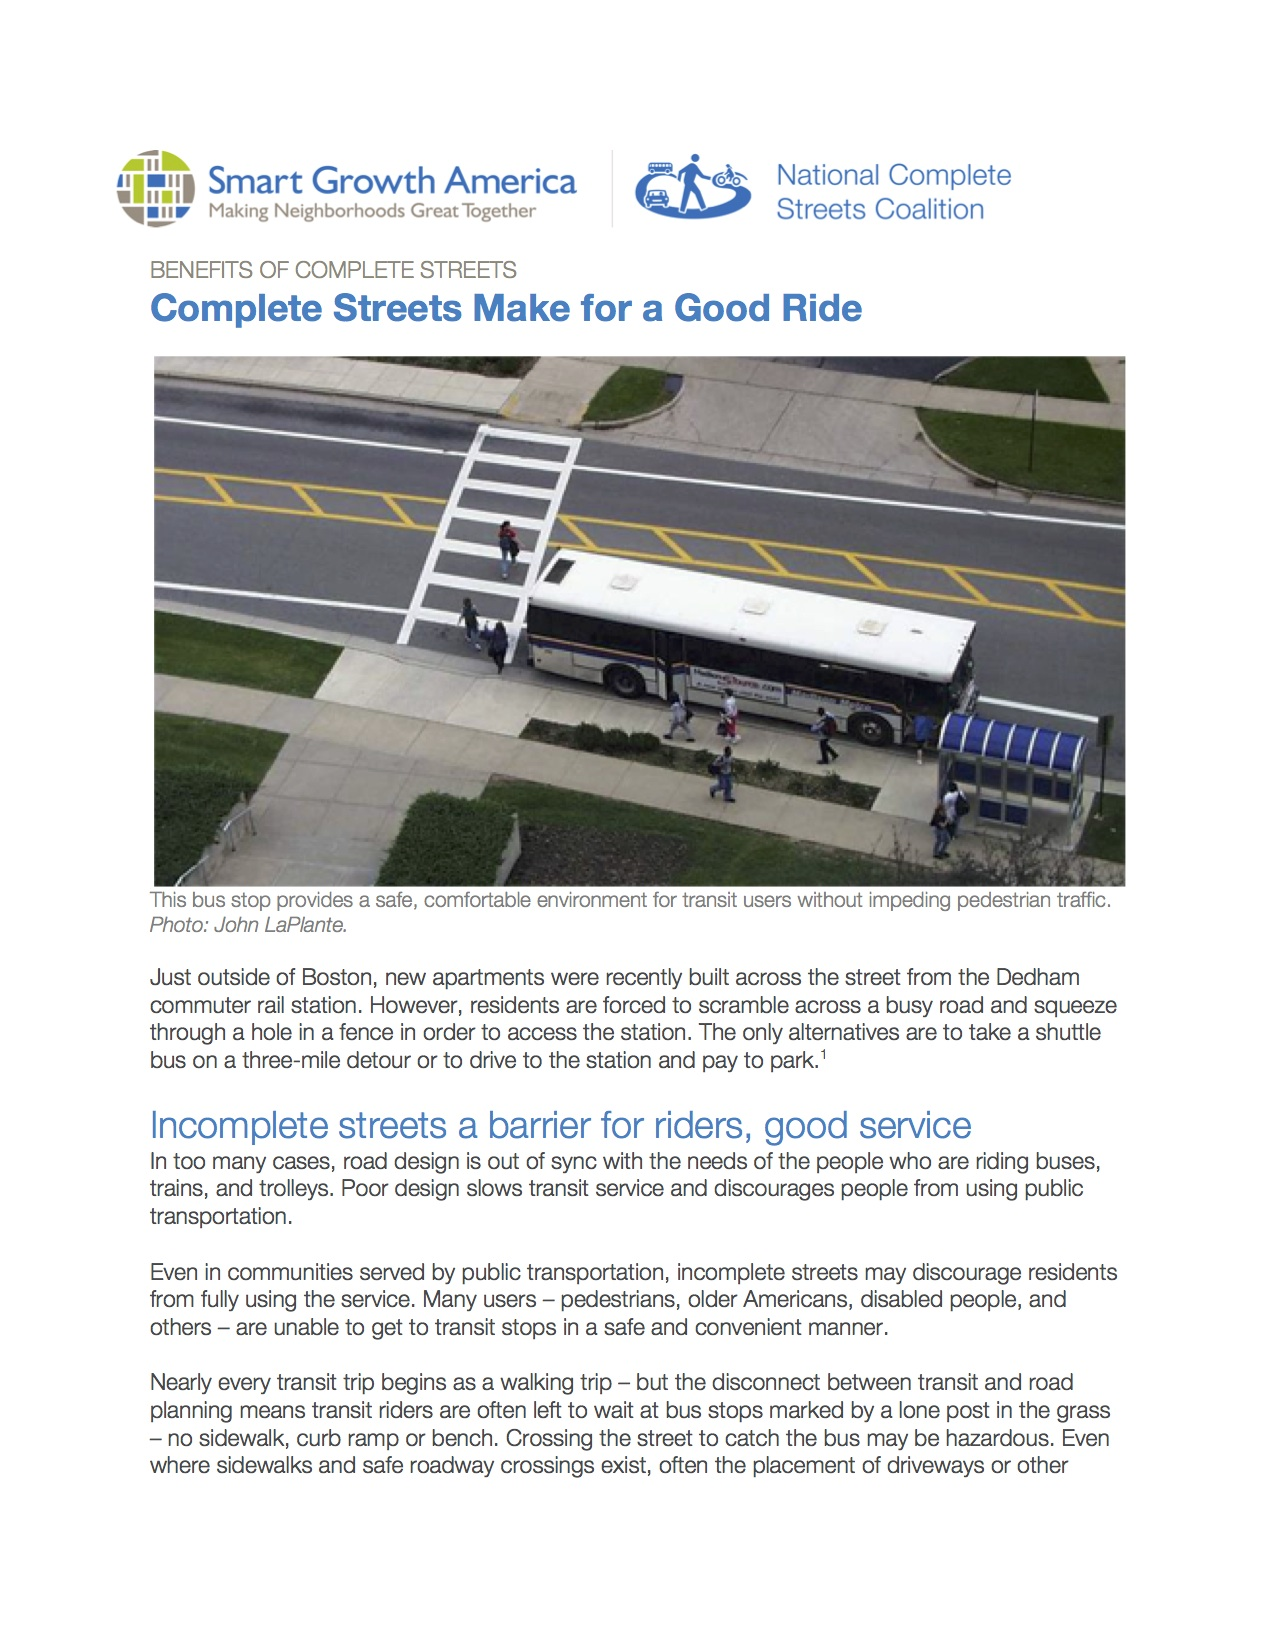 Public Transportation: Benefits of Complete Streets